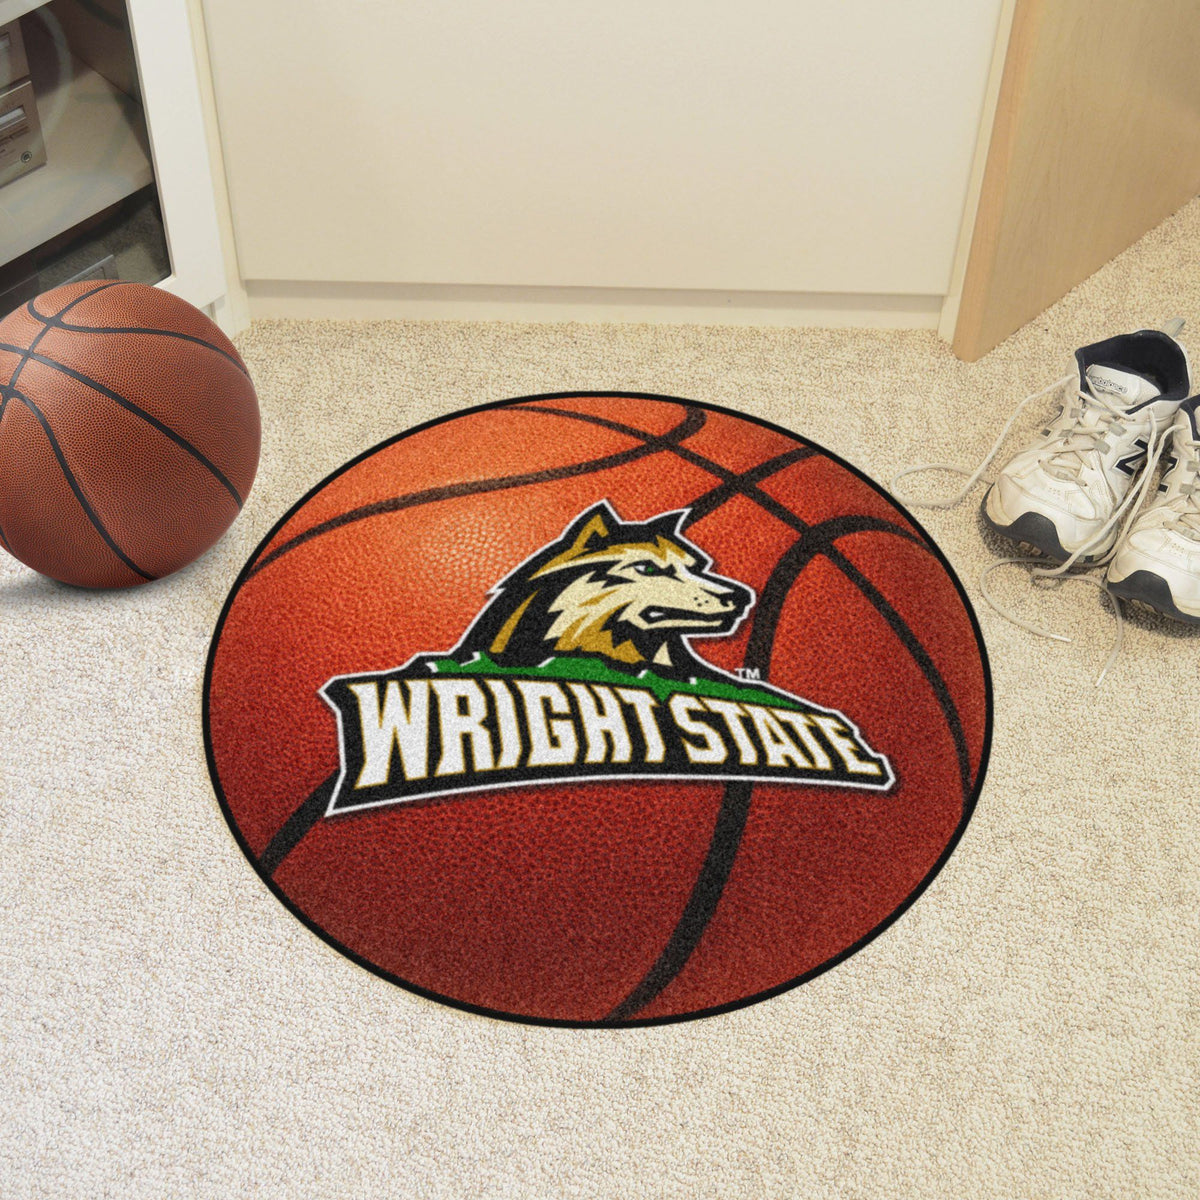 Collegiate - Basketball Mat: T - Z Collegiate Mats, Rectangular Mats, Basketball Mat, Collegiate, Home Fan Mats Wright State